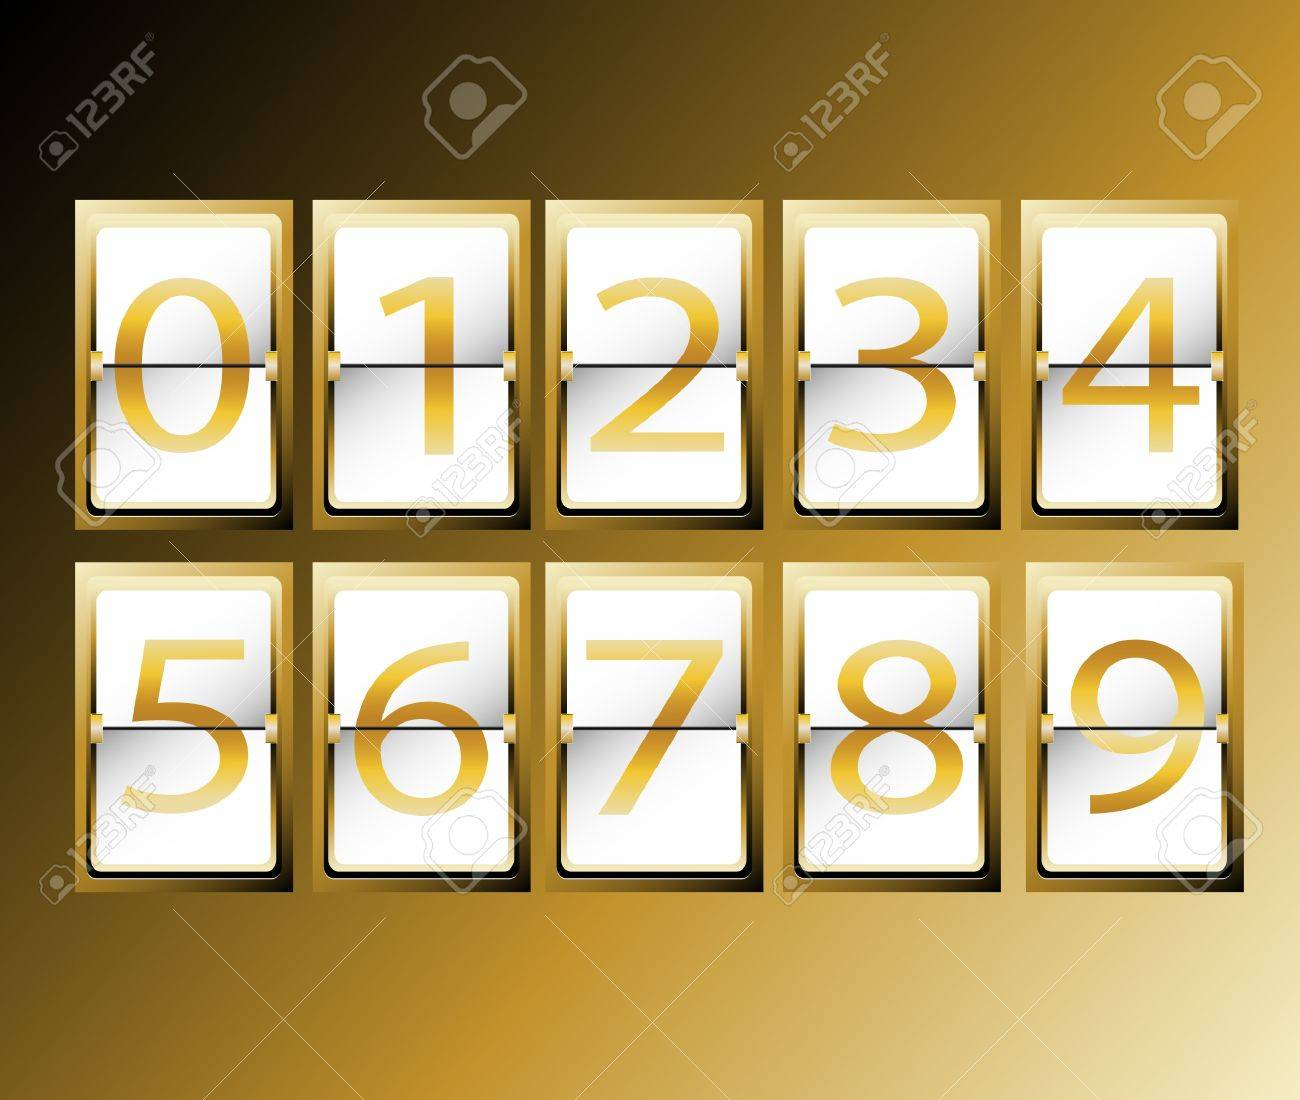 numbers on Airport Terminal timetable Display Font Set gold vector illustration Stock Vector - 18976527